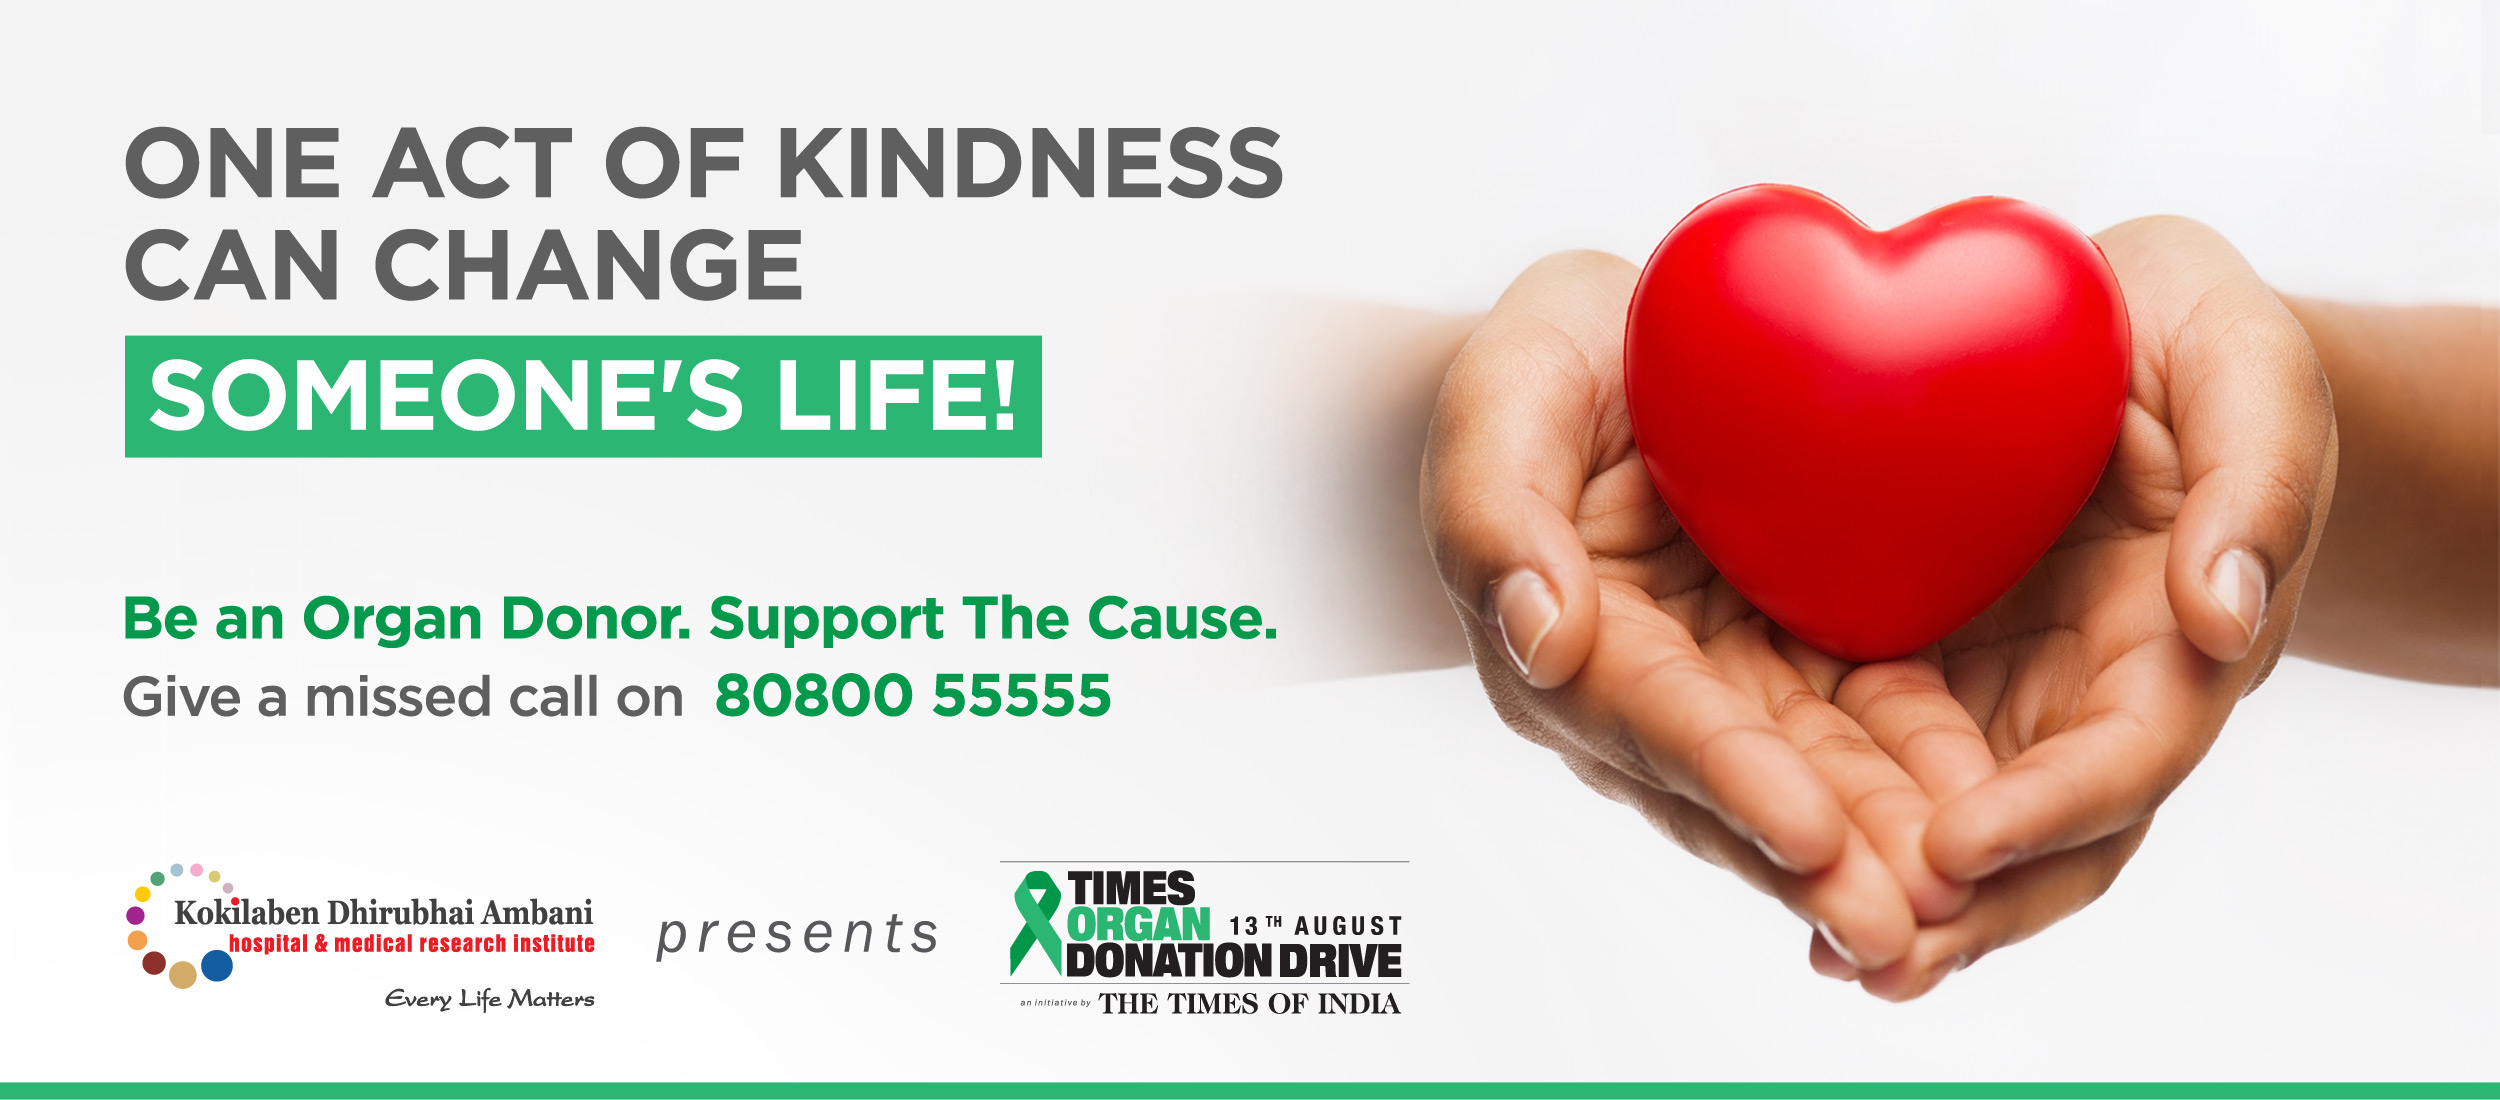 Kokilaben Dhirubhai Ambani Hospital - Be an Organ Donor. Support The Cause